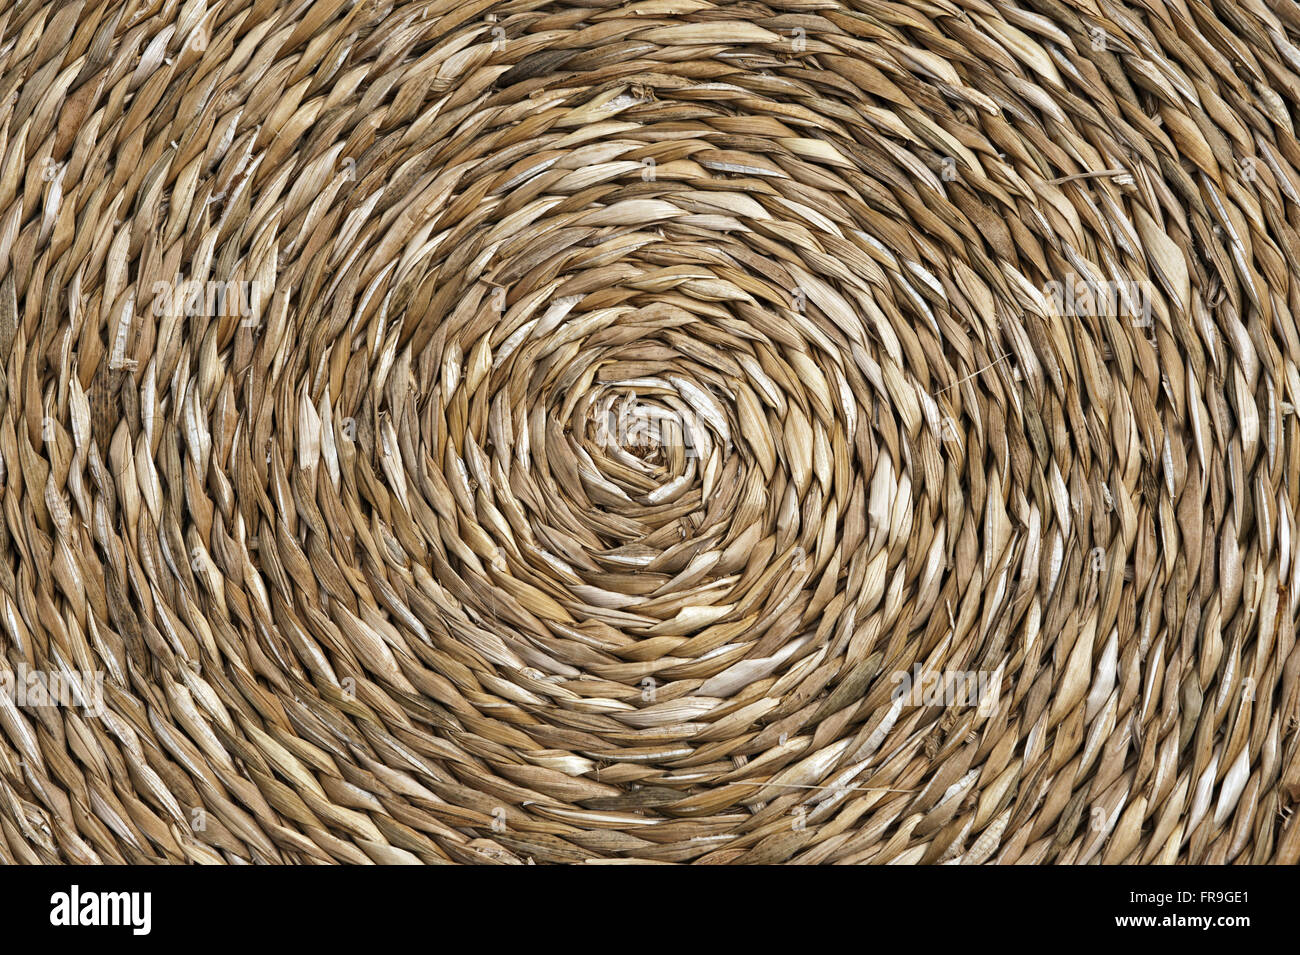 Detail of cattail crafts - Artesas Associated Happy Valley - Stock Image